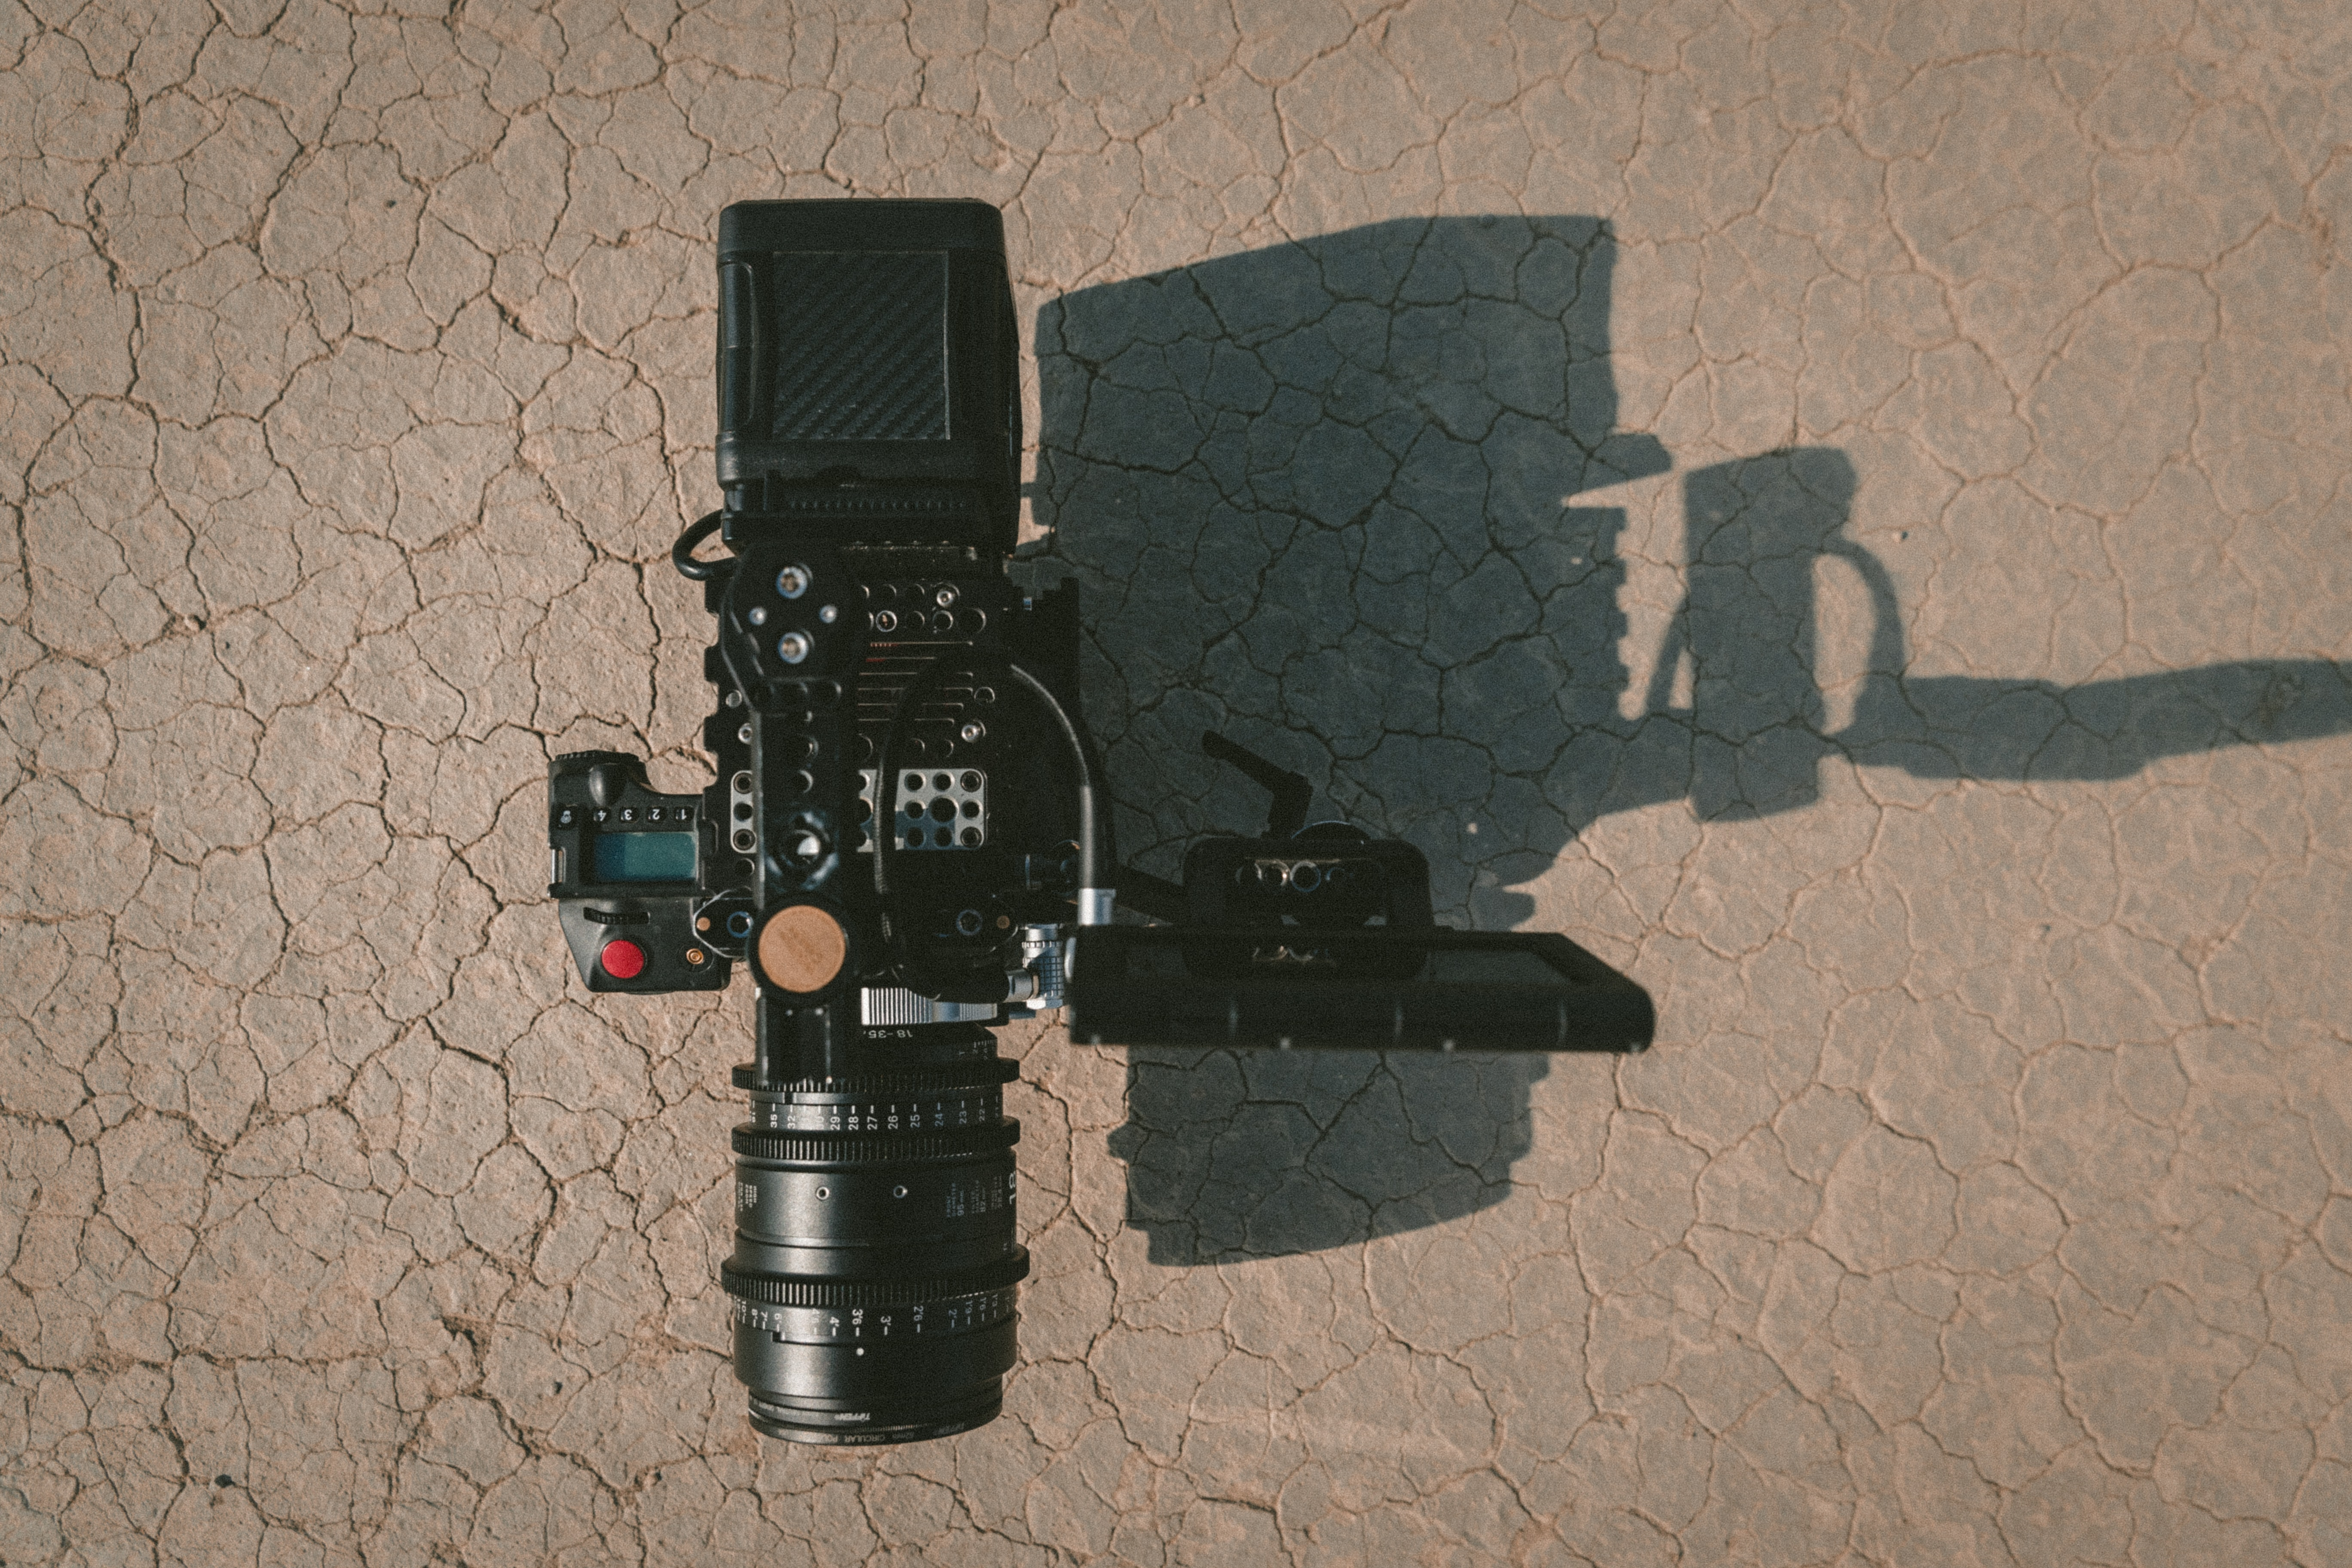 black DSLR camera on brown dirt